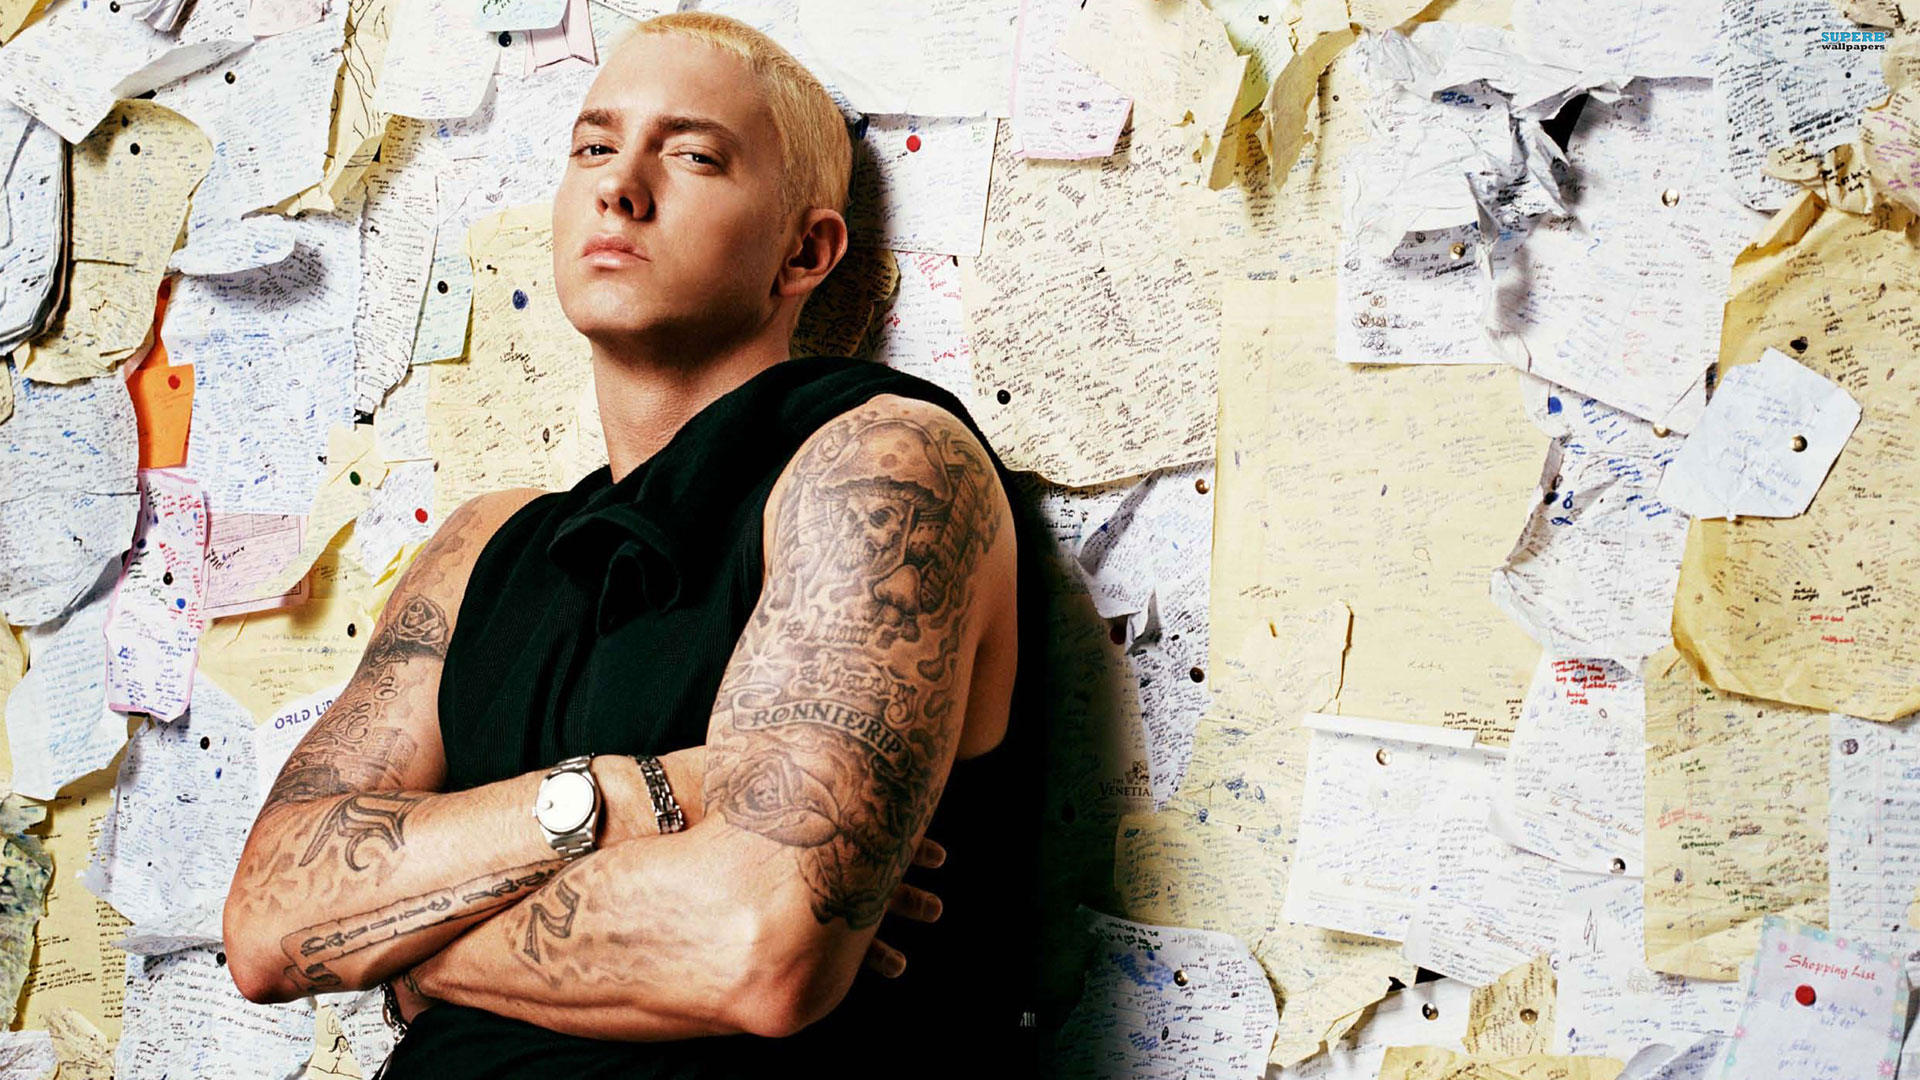 The Monster av Eminem